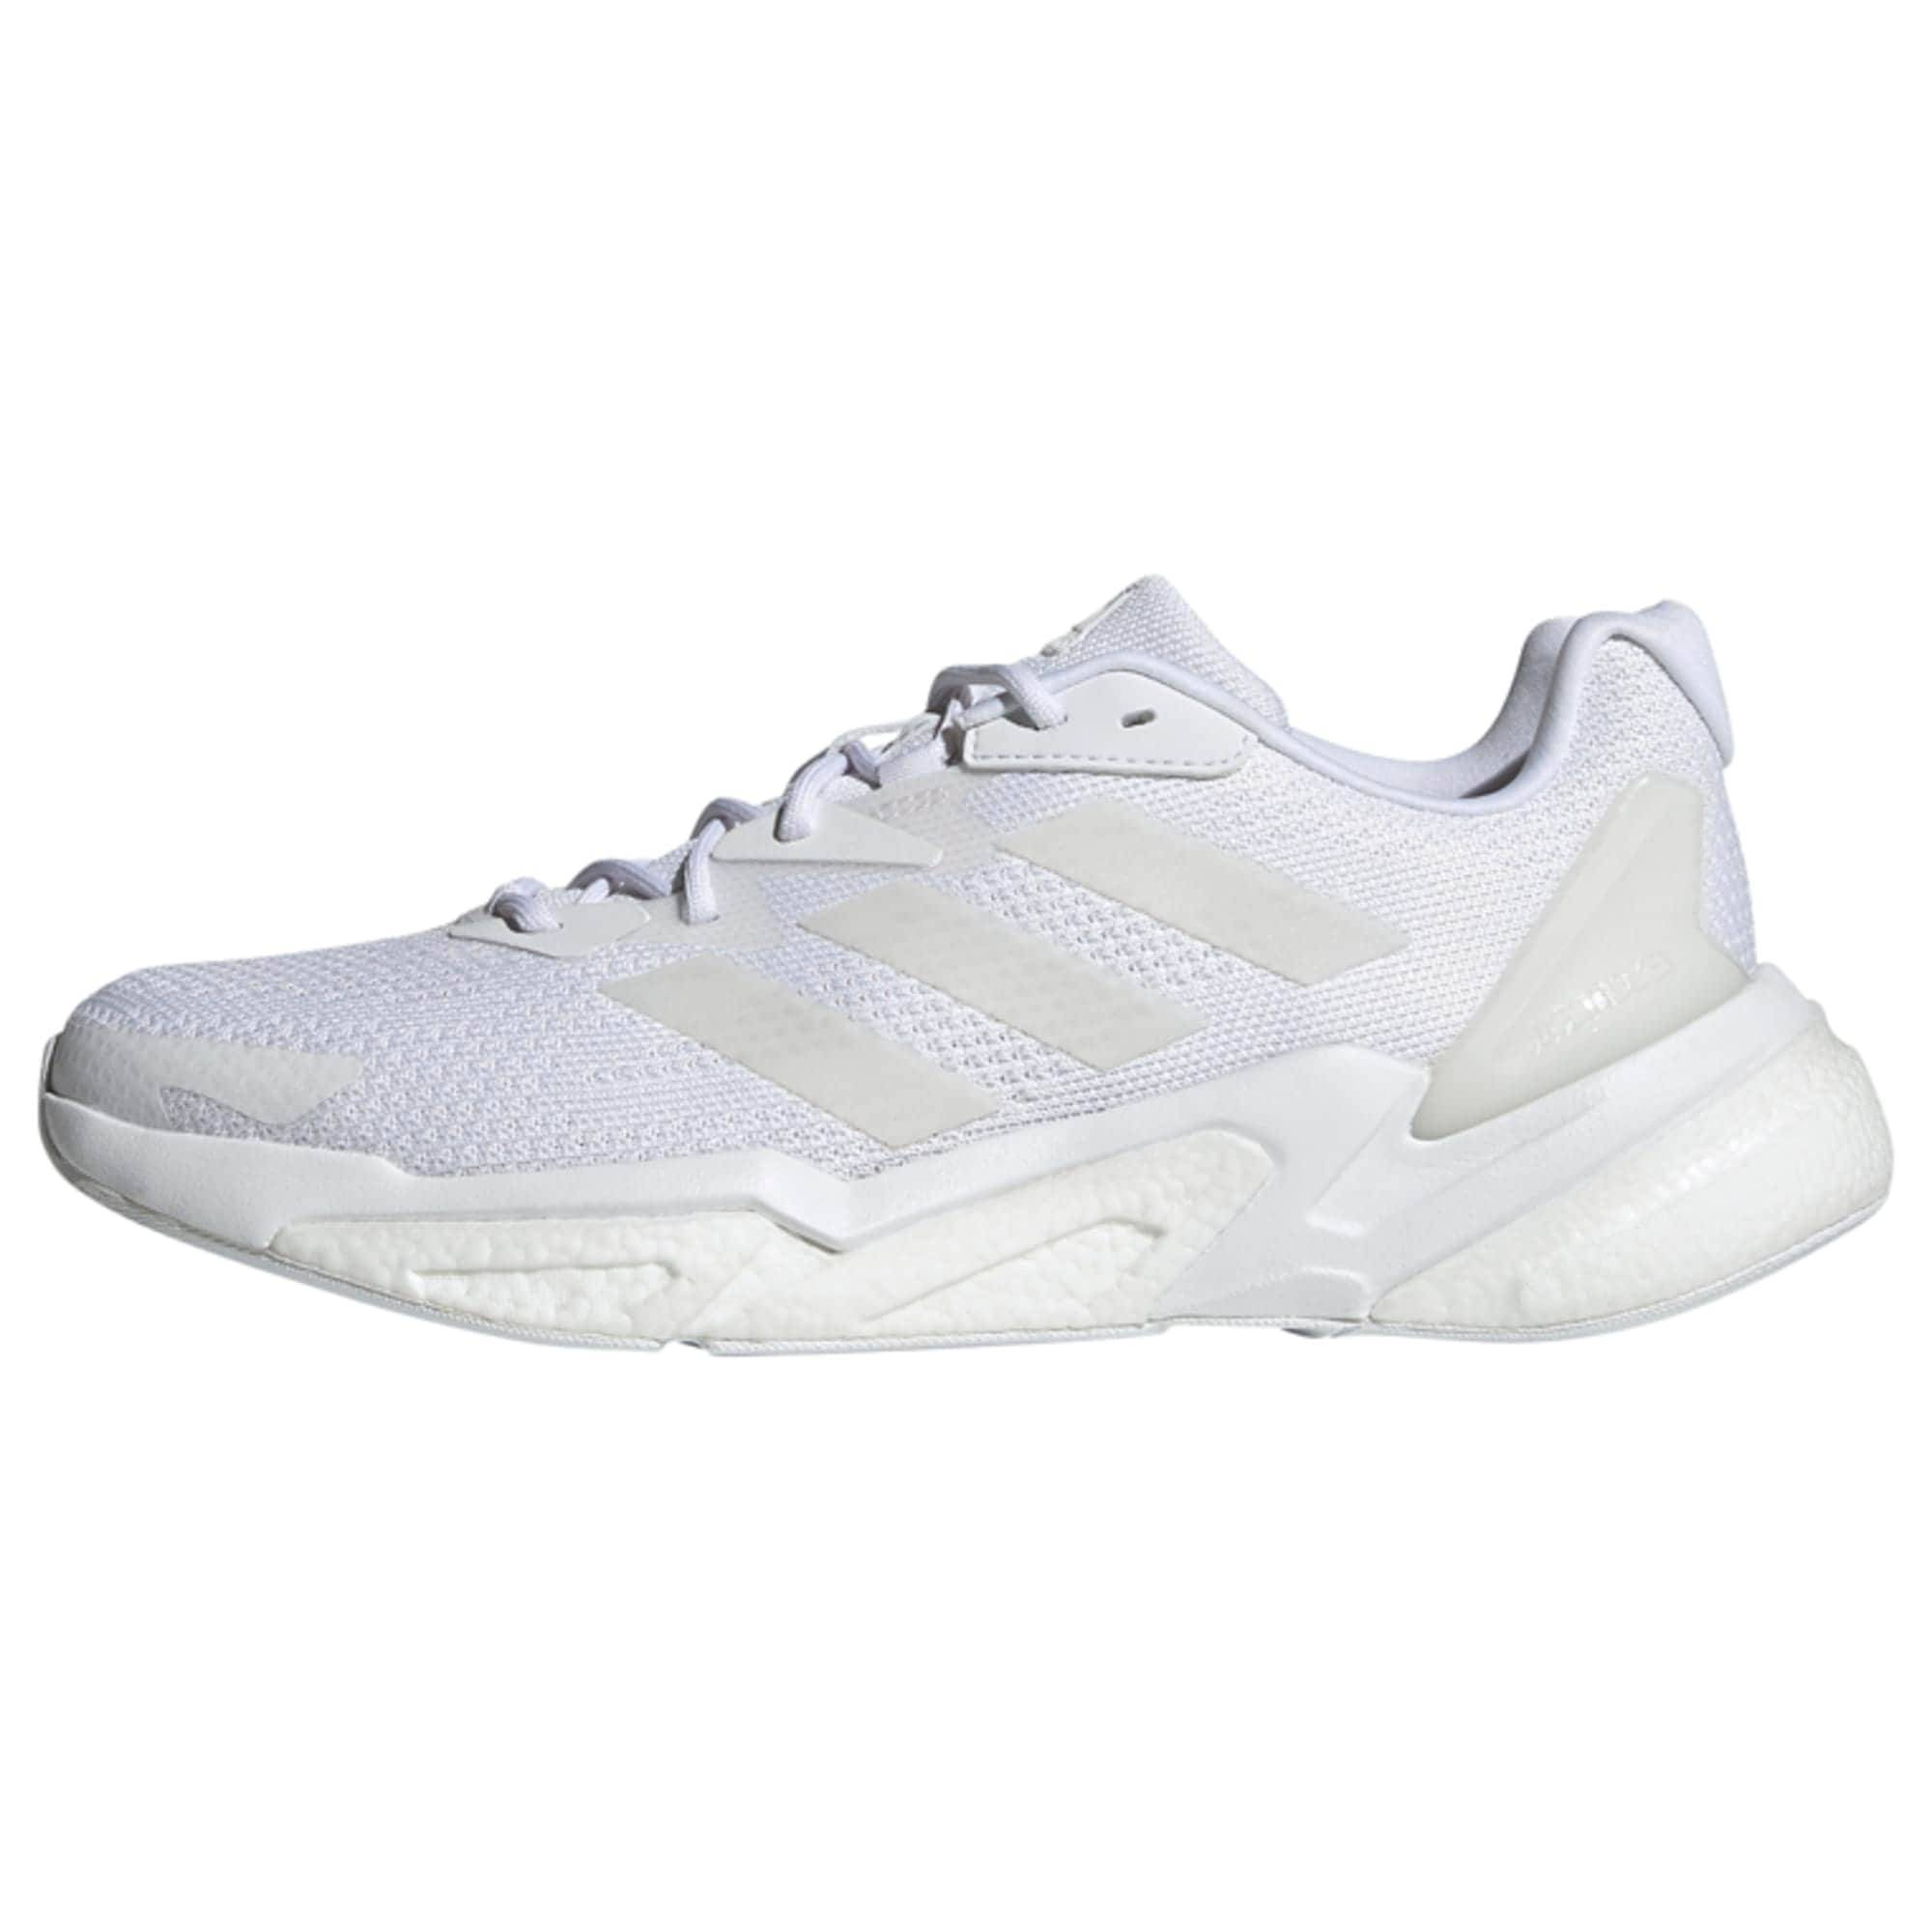 ADIDAS PERFORMANCE Chaussure de course  - Blanc - Taille: 9 - male